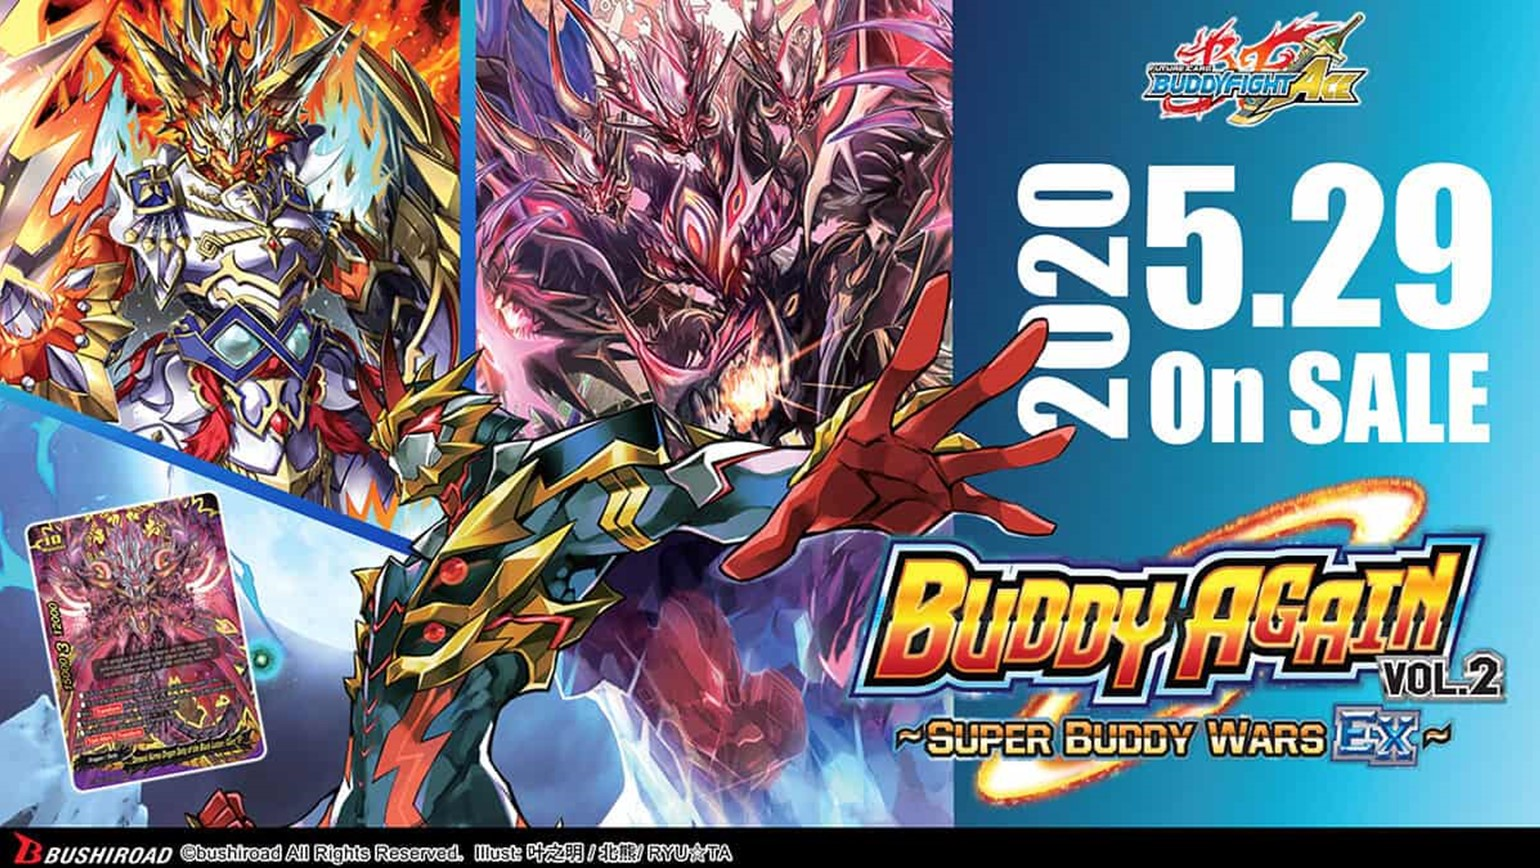 Future Card Buddyfight Ace Ultimate Booster Vol. 5 Buddy Again Vol. 2 ~Super Buddy Wars EX~ Coming May 29th